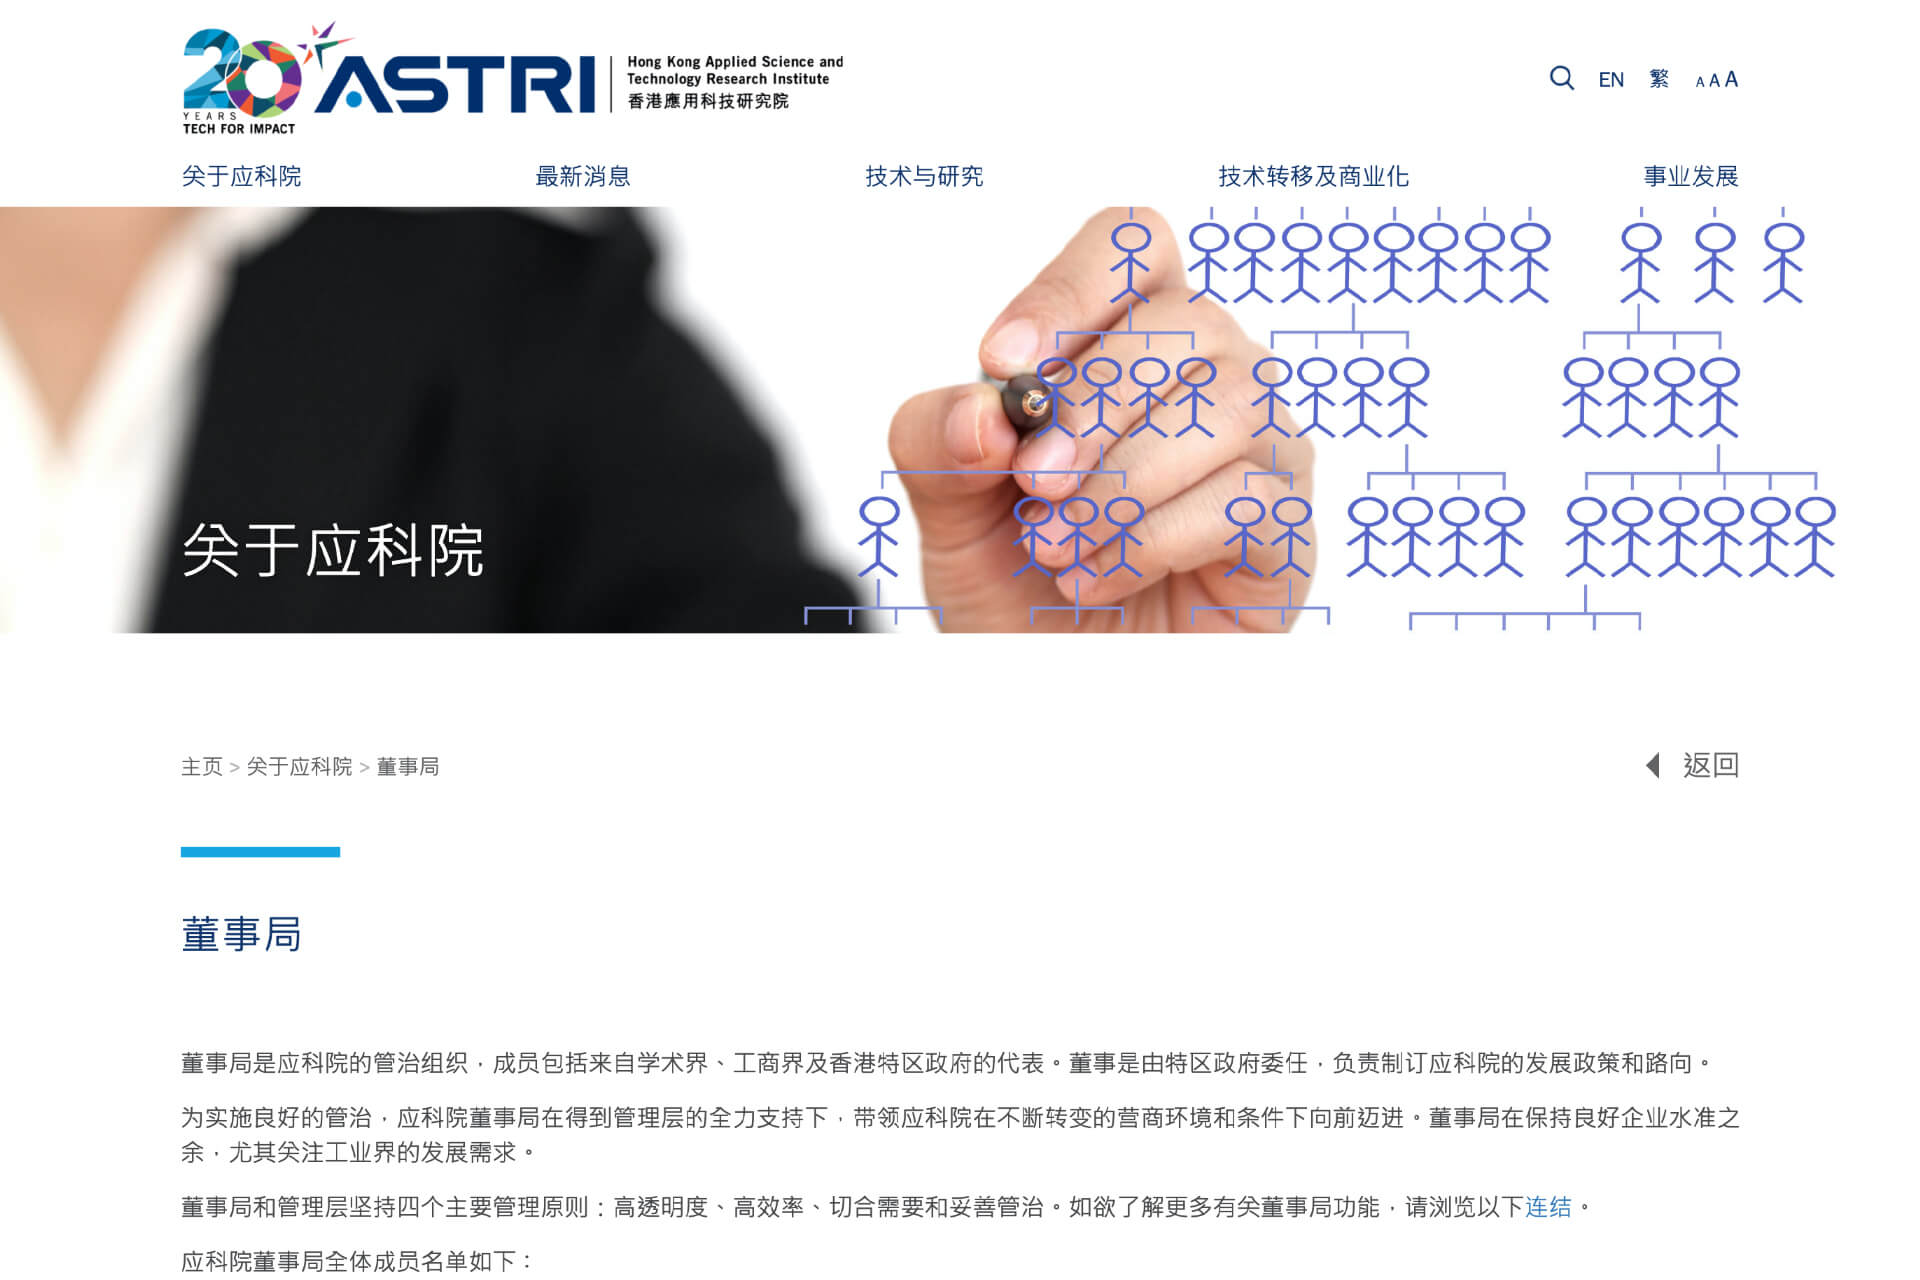 Hong Kong Applied Science and Technology Research Institute Company Limited (ASTRI)